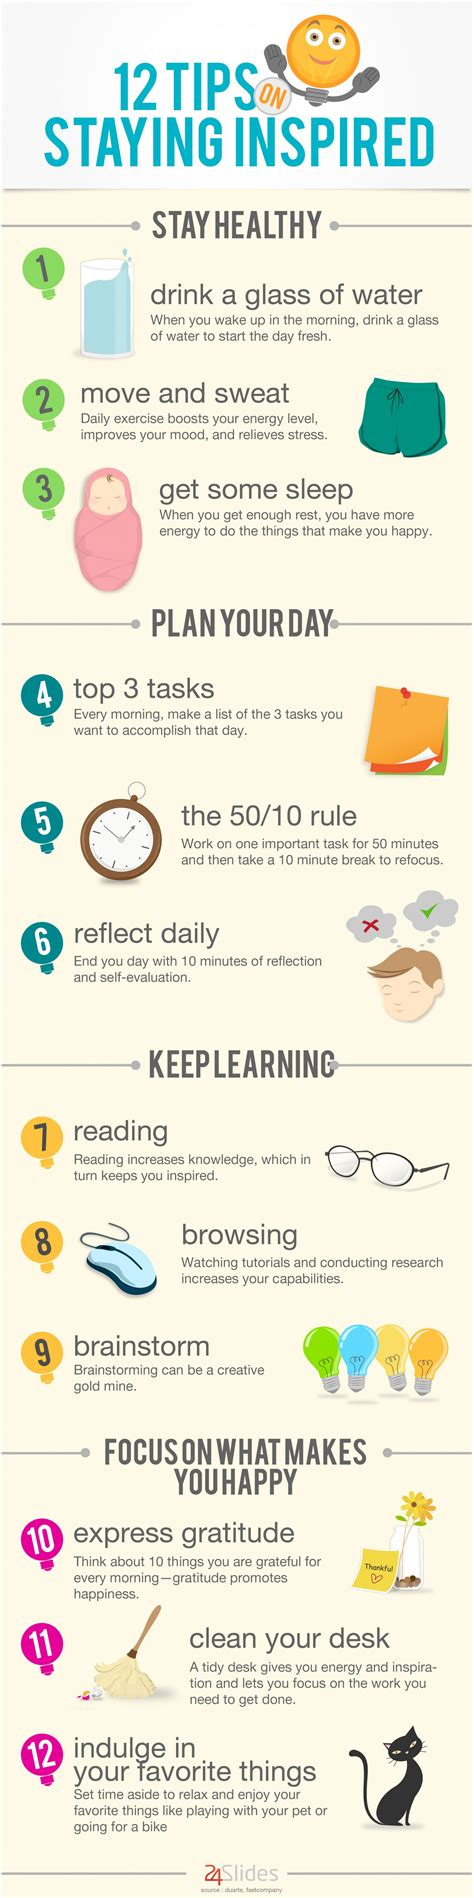 12 Tips On Staying Inspired Visually